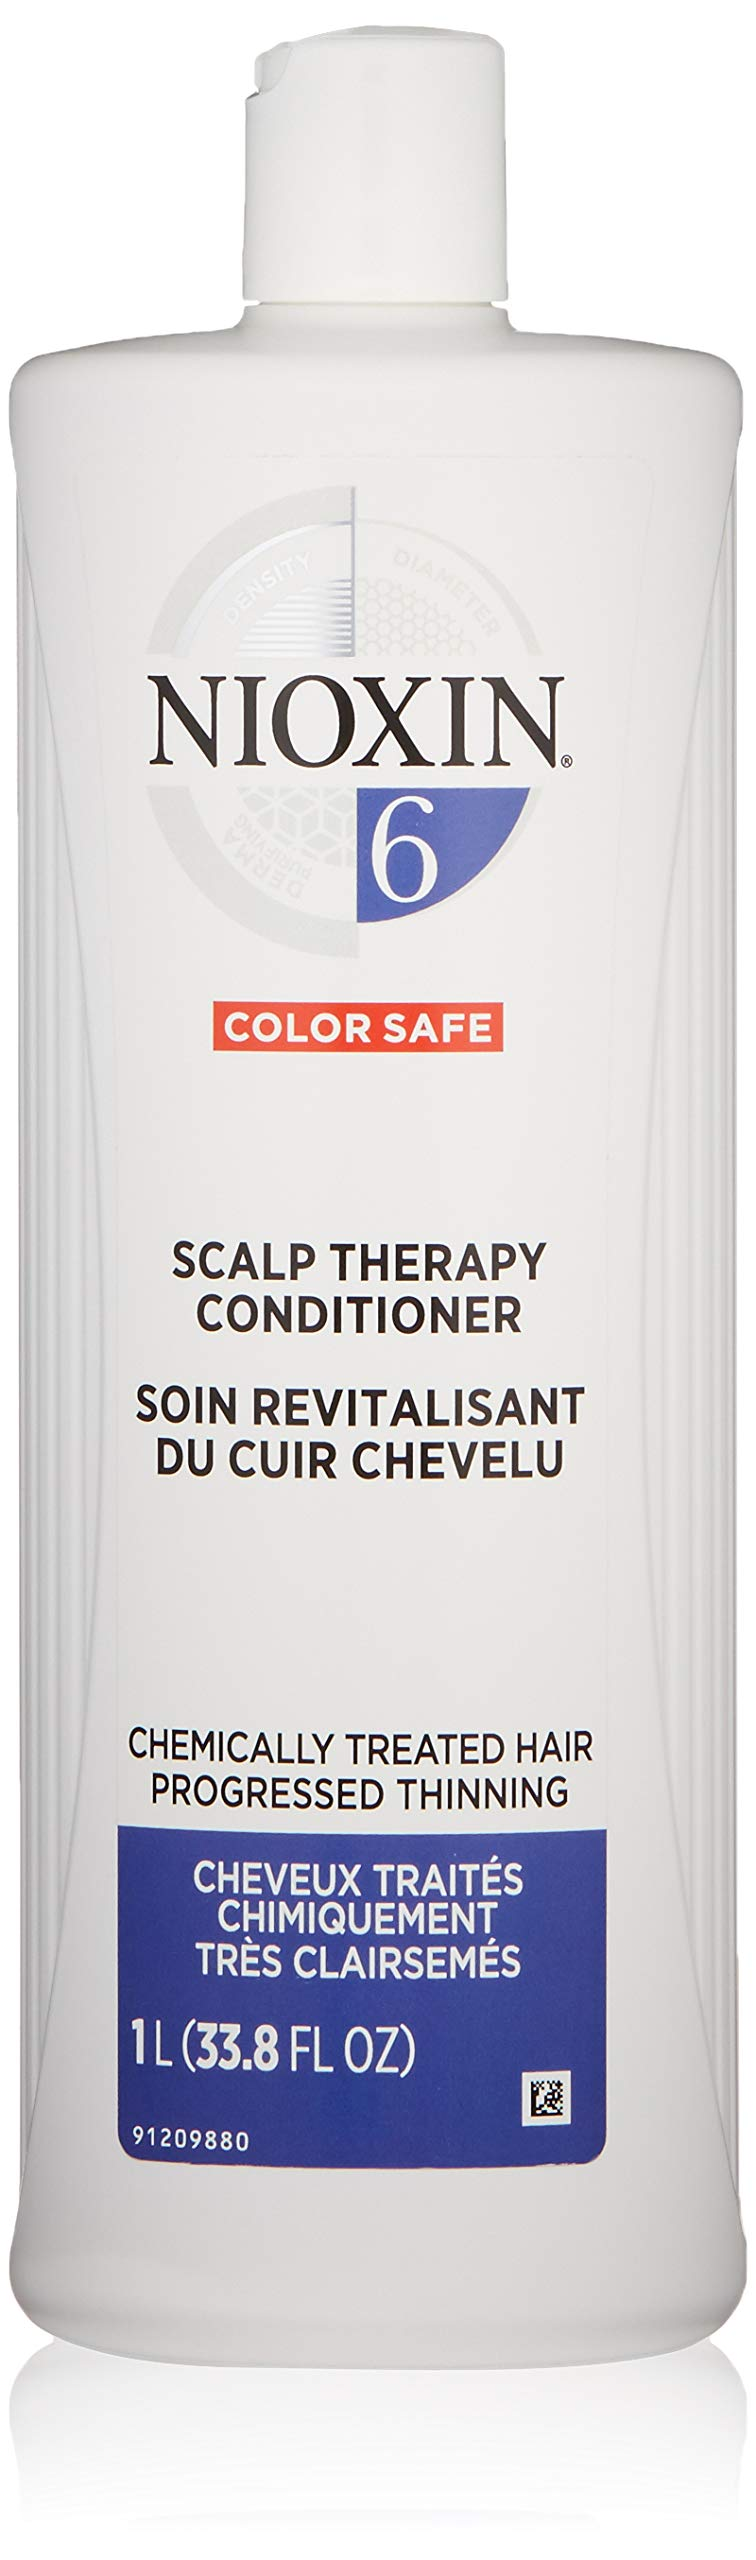 Nioxin Scalp Therapy Conditioner for Medium or Coarse Hair System 6 Natural Hair, 33.8 Ounce